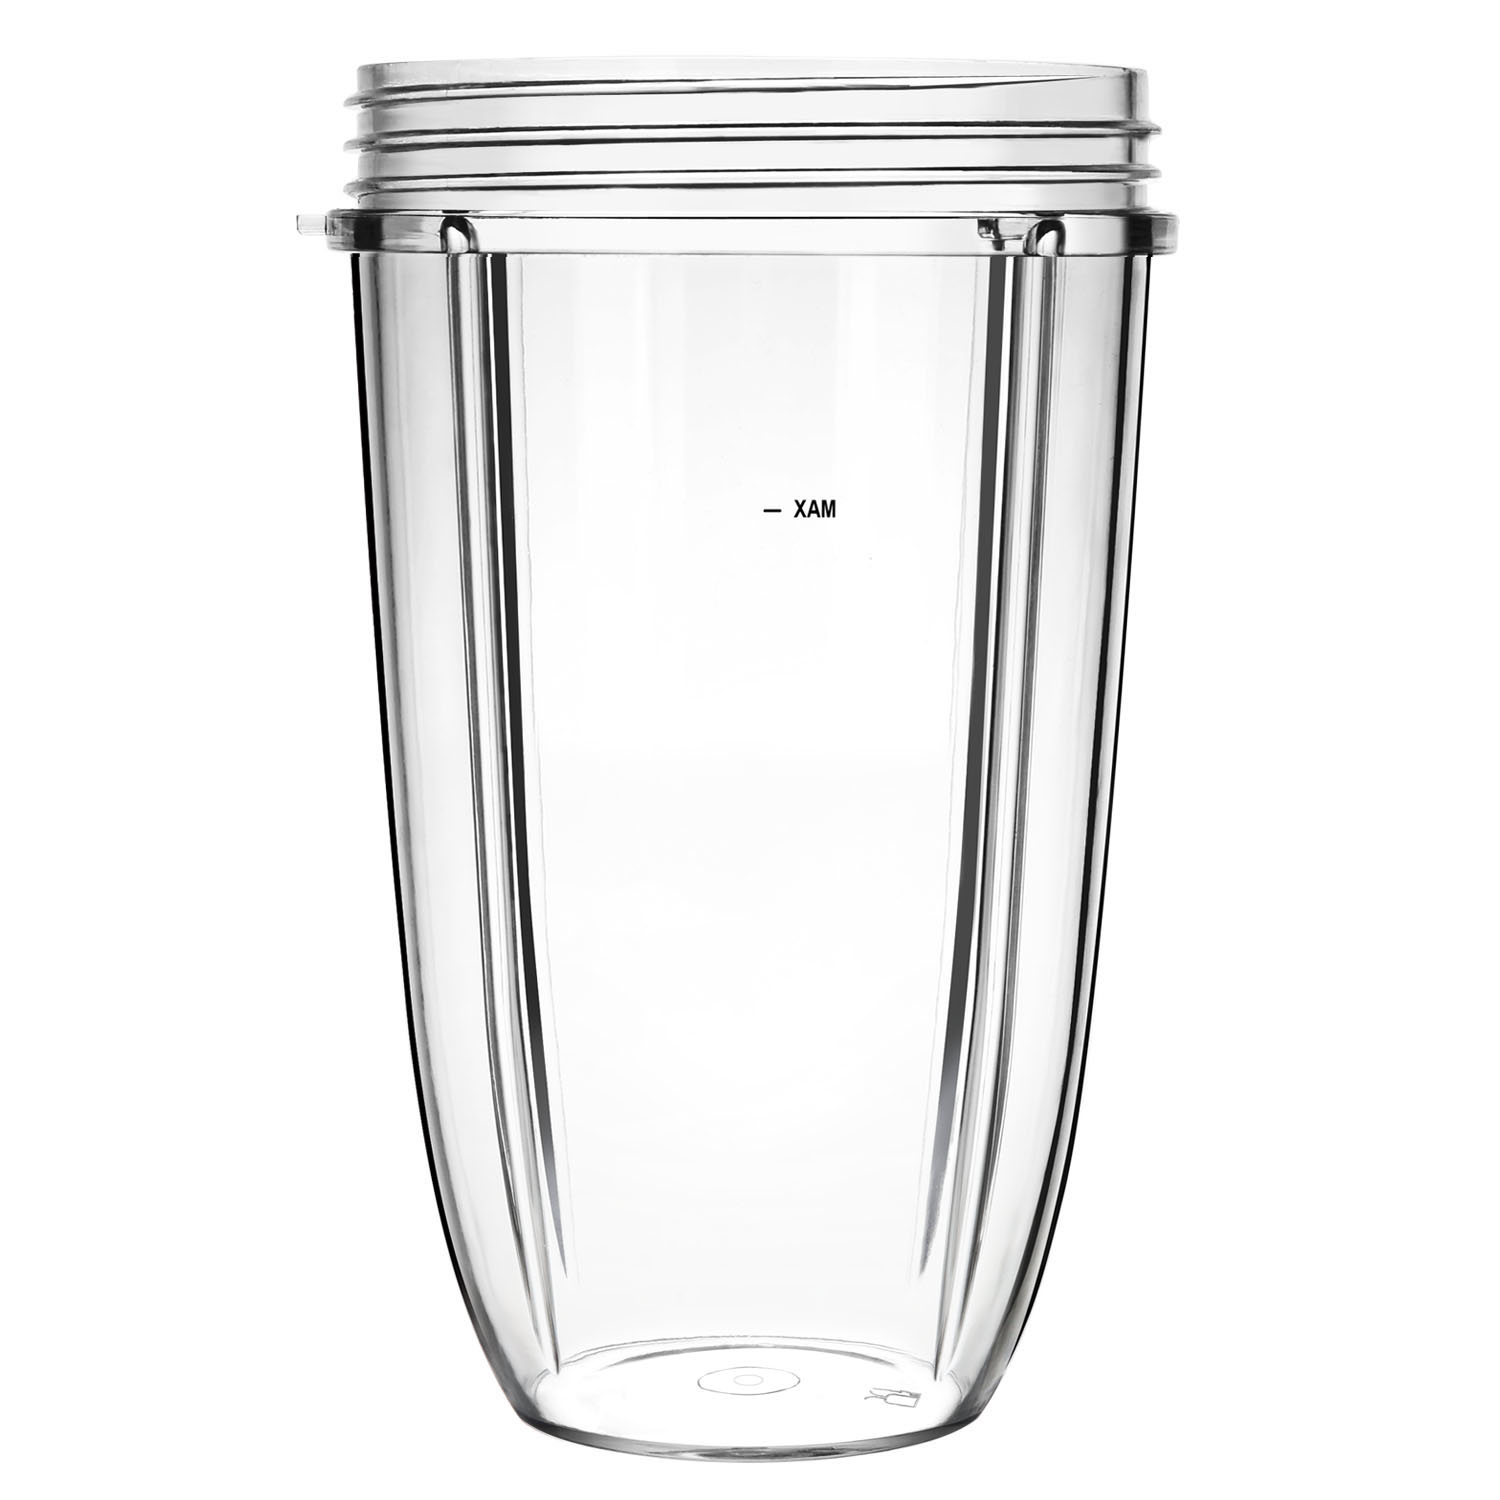 24oz replacement mug tall cup for nutri bullet blender juicer mixer part accessory